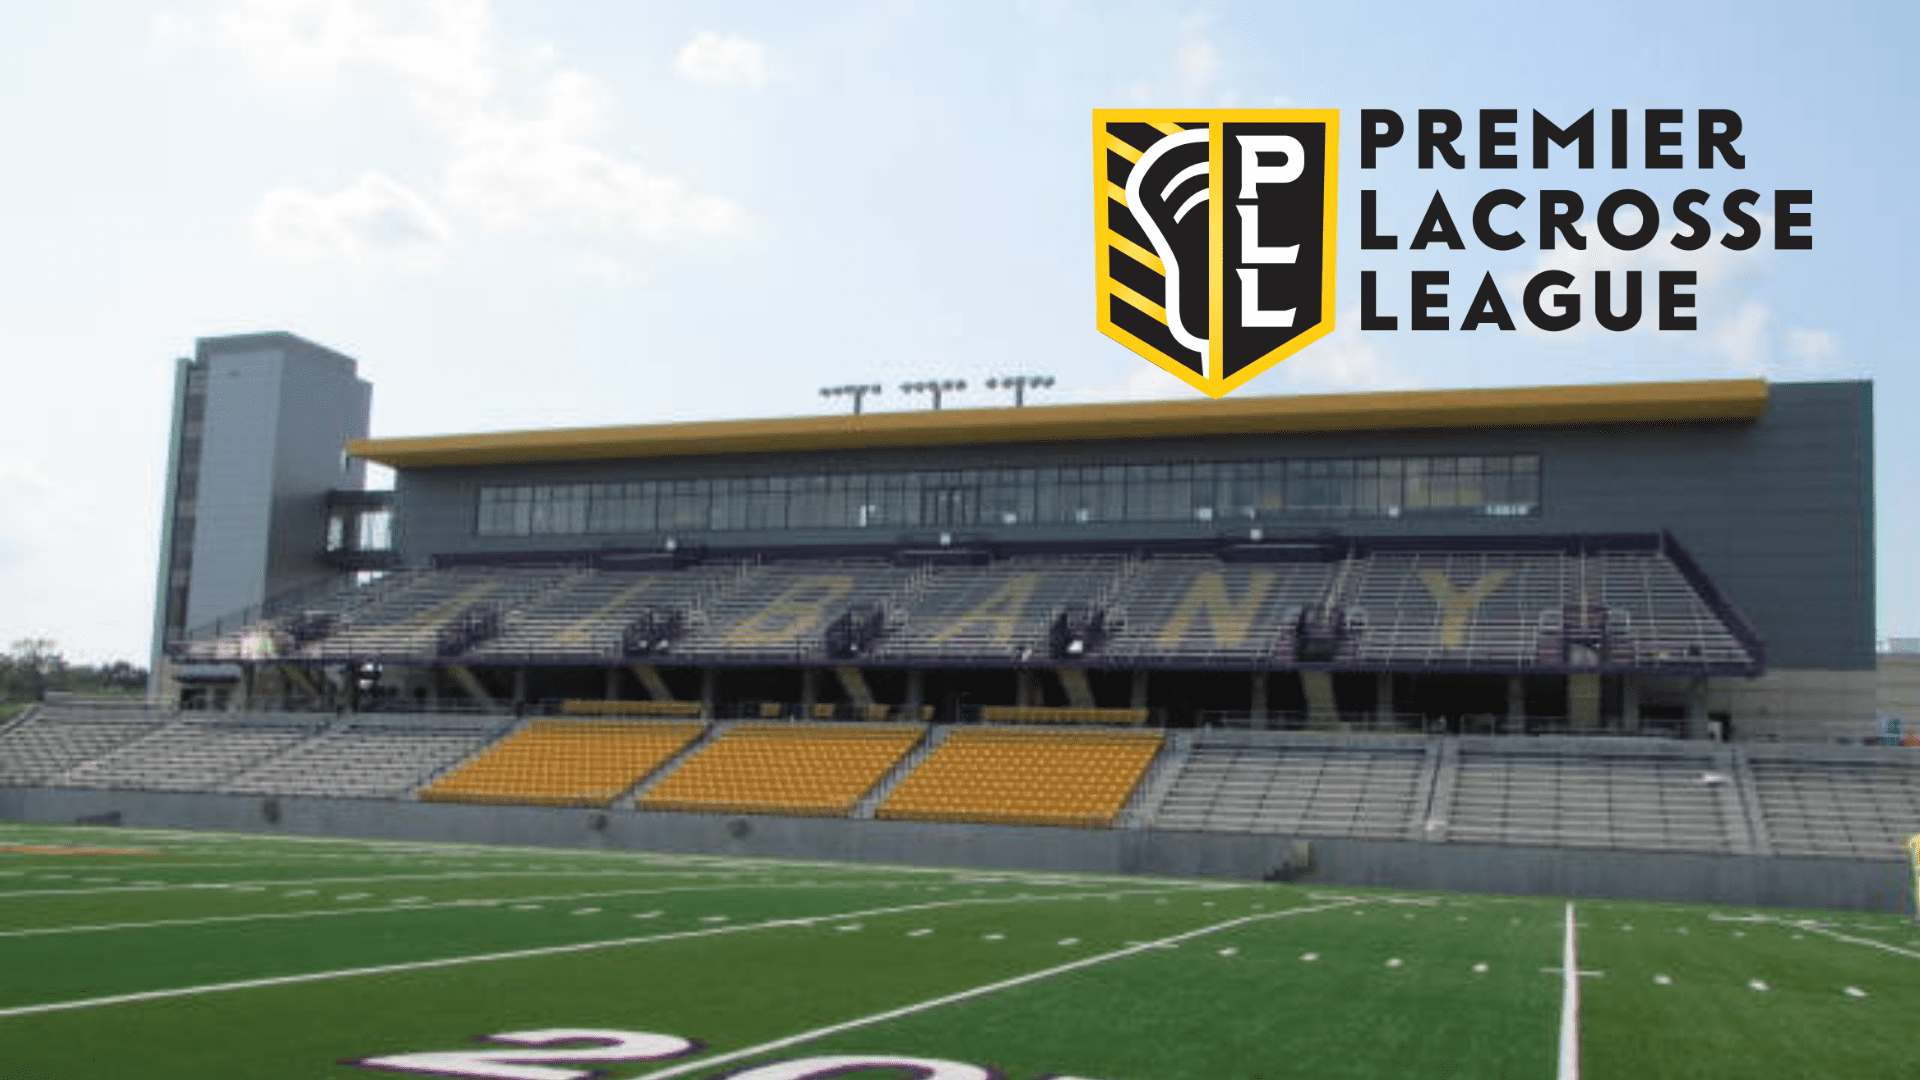 pll premier lacrosse league albany university at albany ny new york